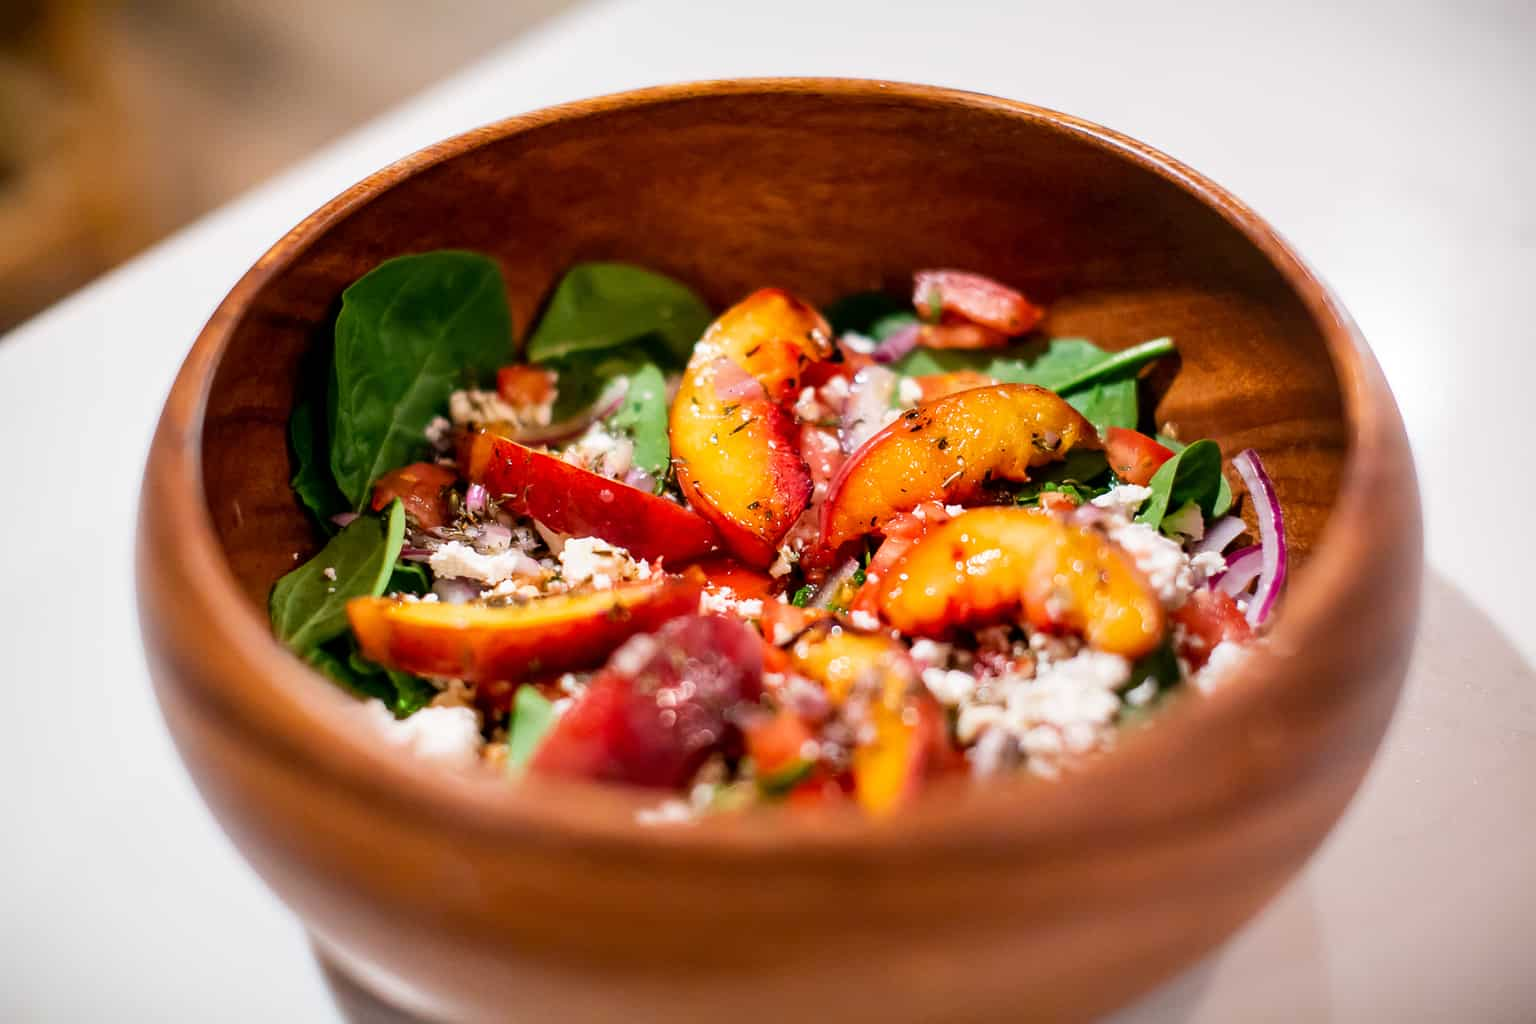 Grilled peach salad served on a wooden bowl